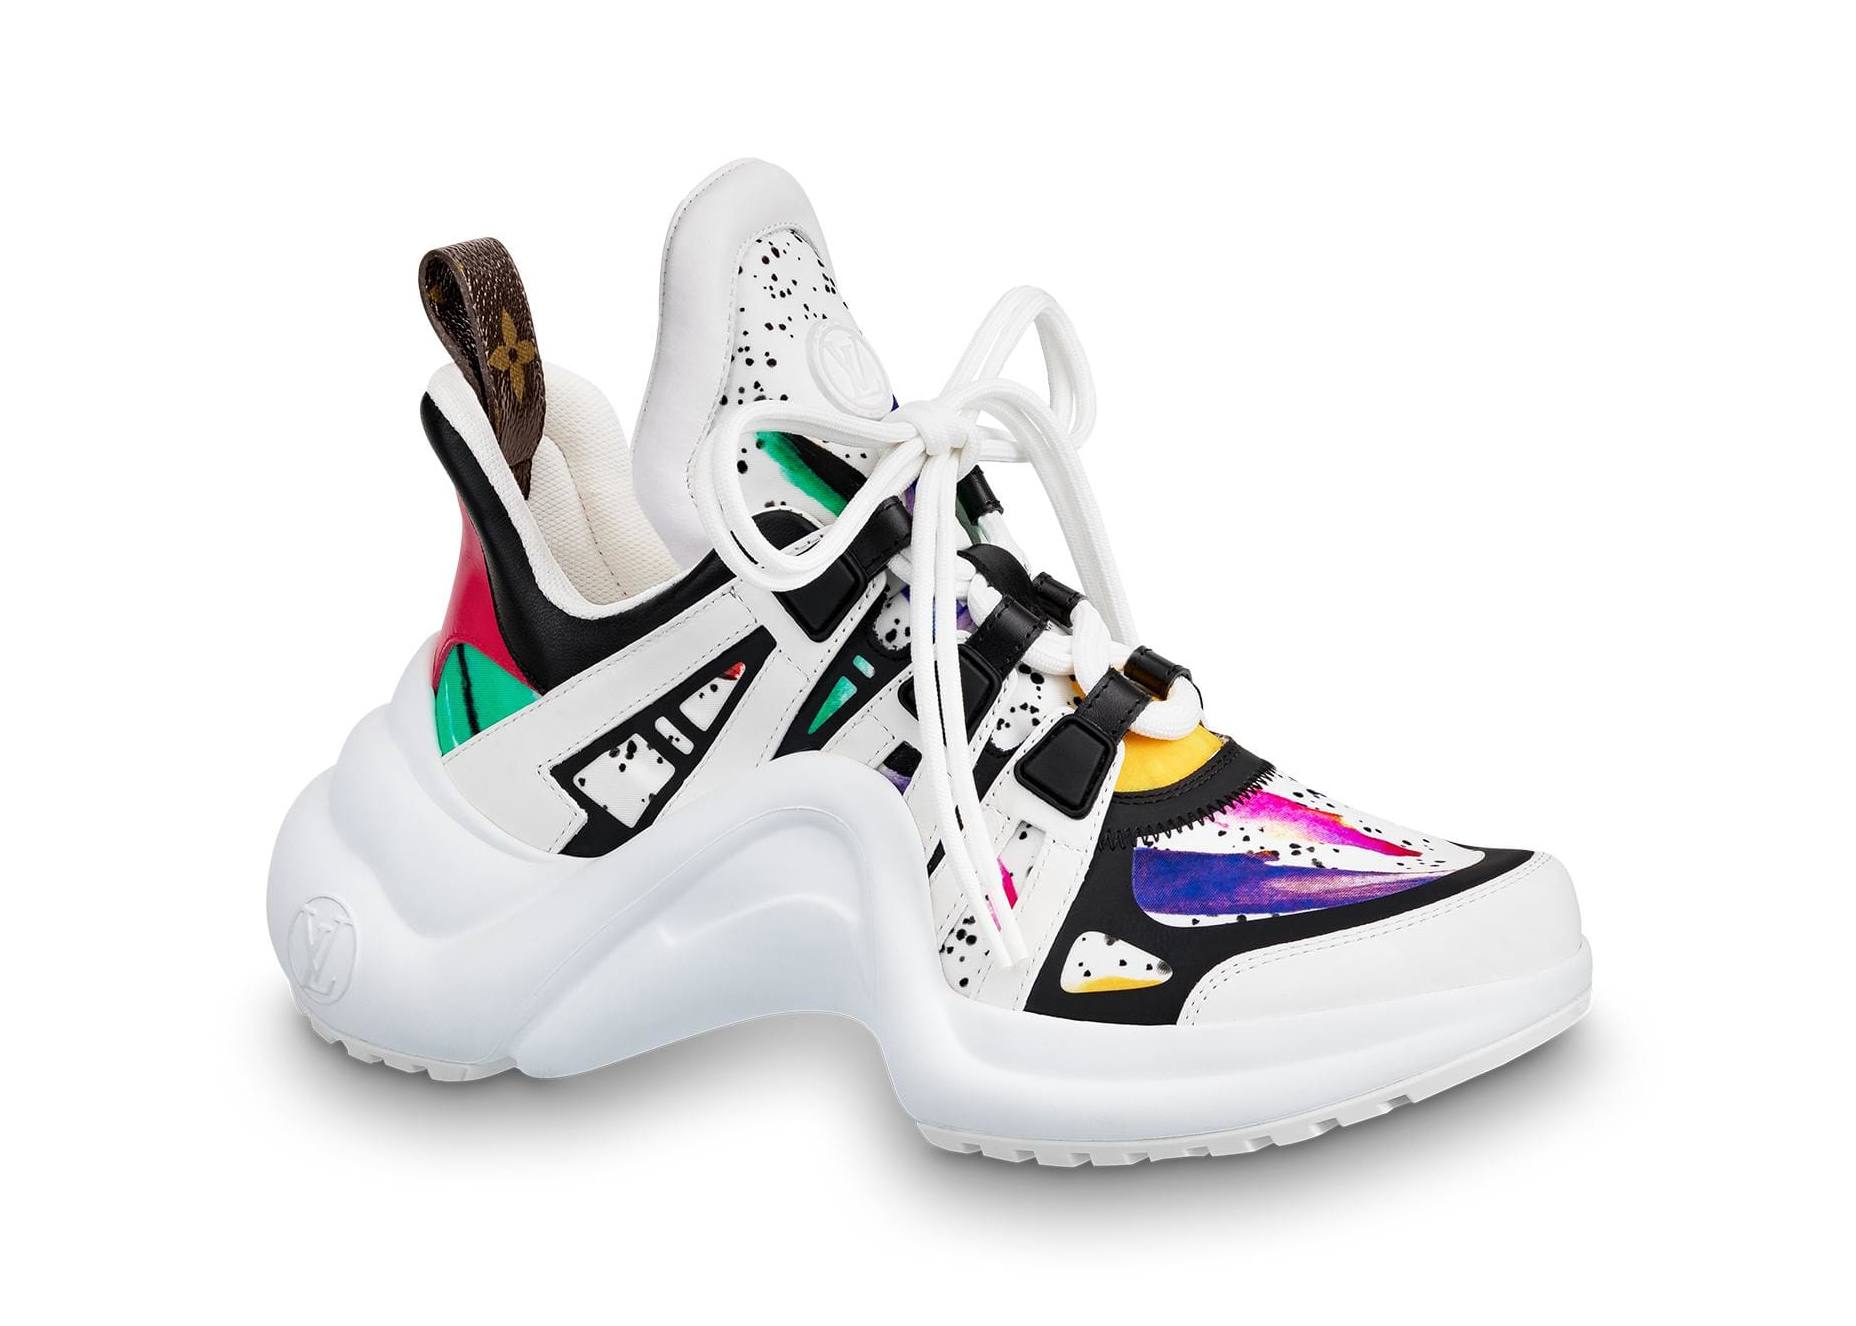 LV Arclight Sneakers; Image Credits: Louis Vuitton